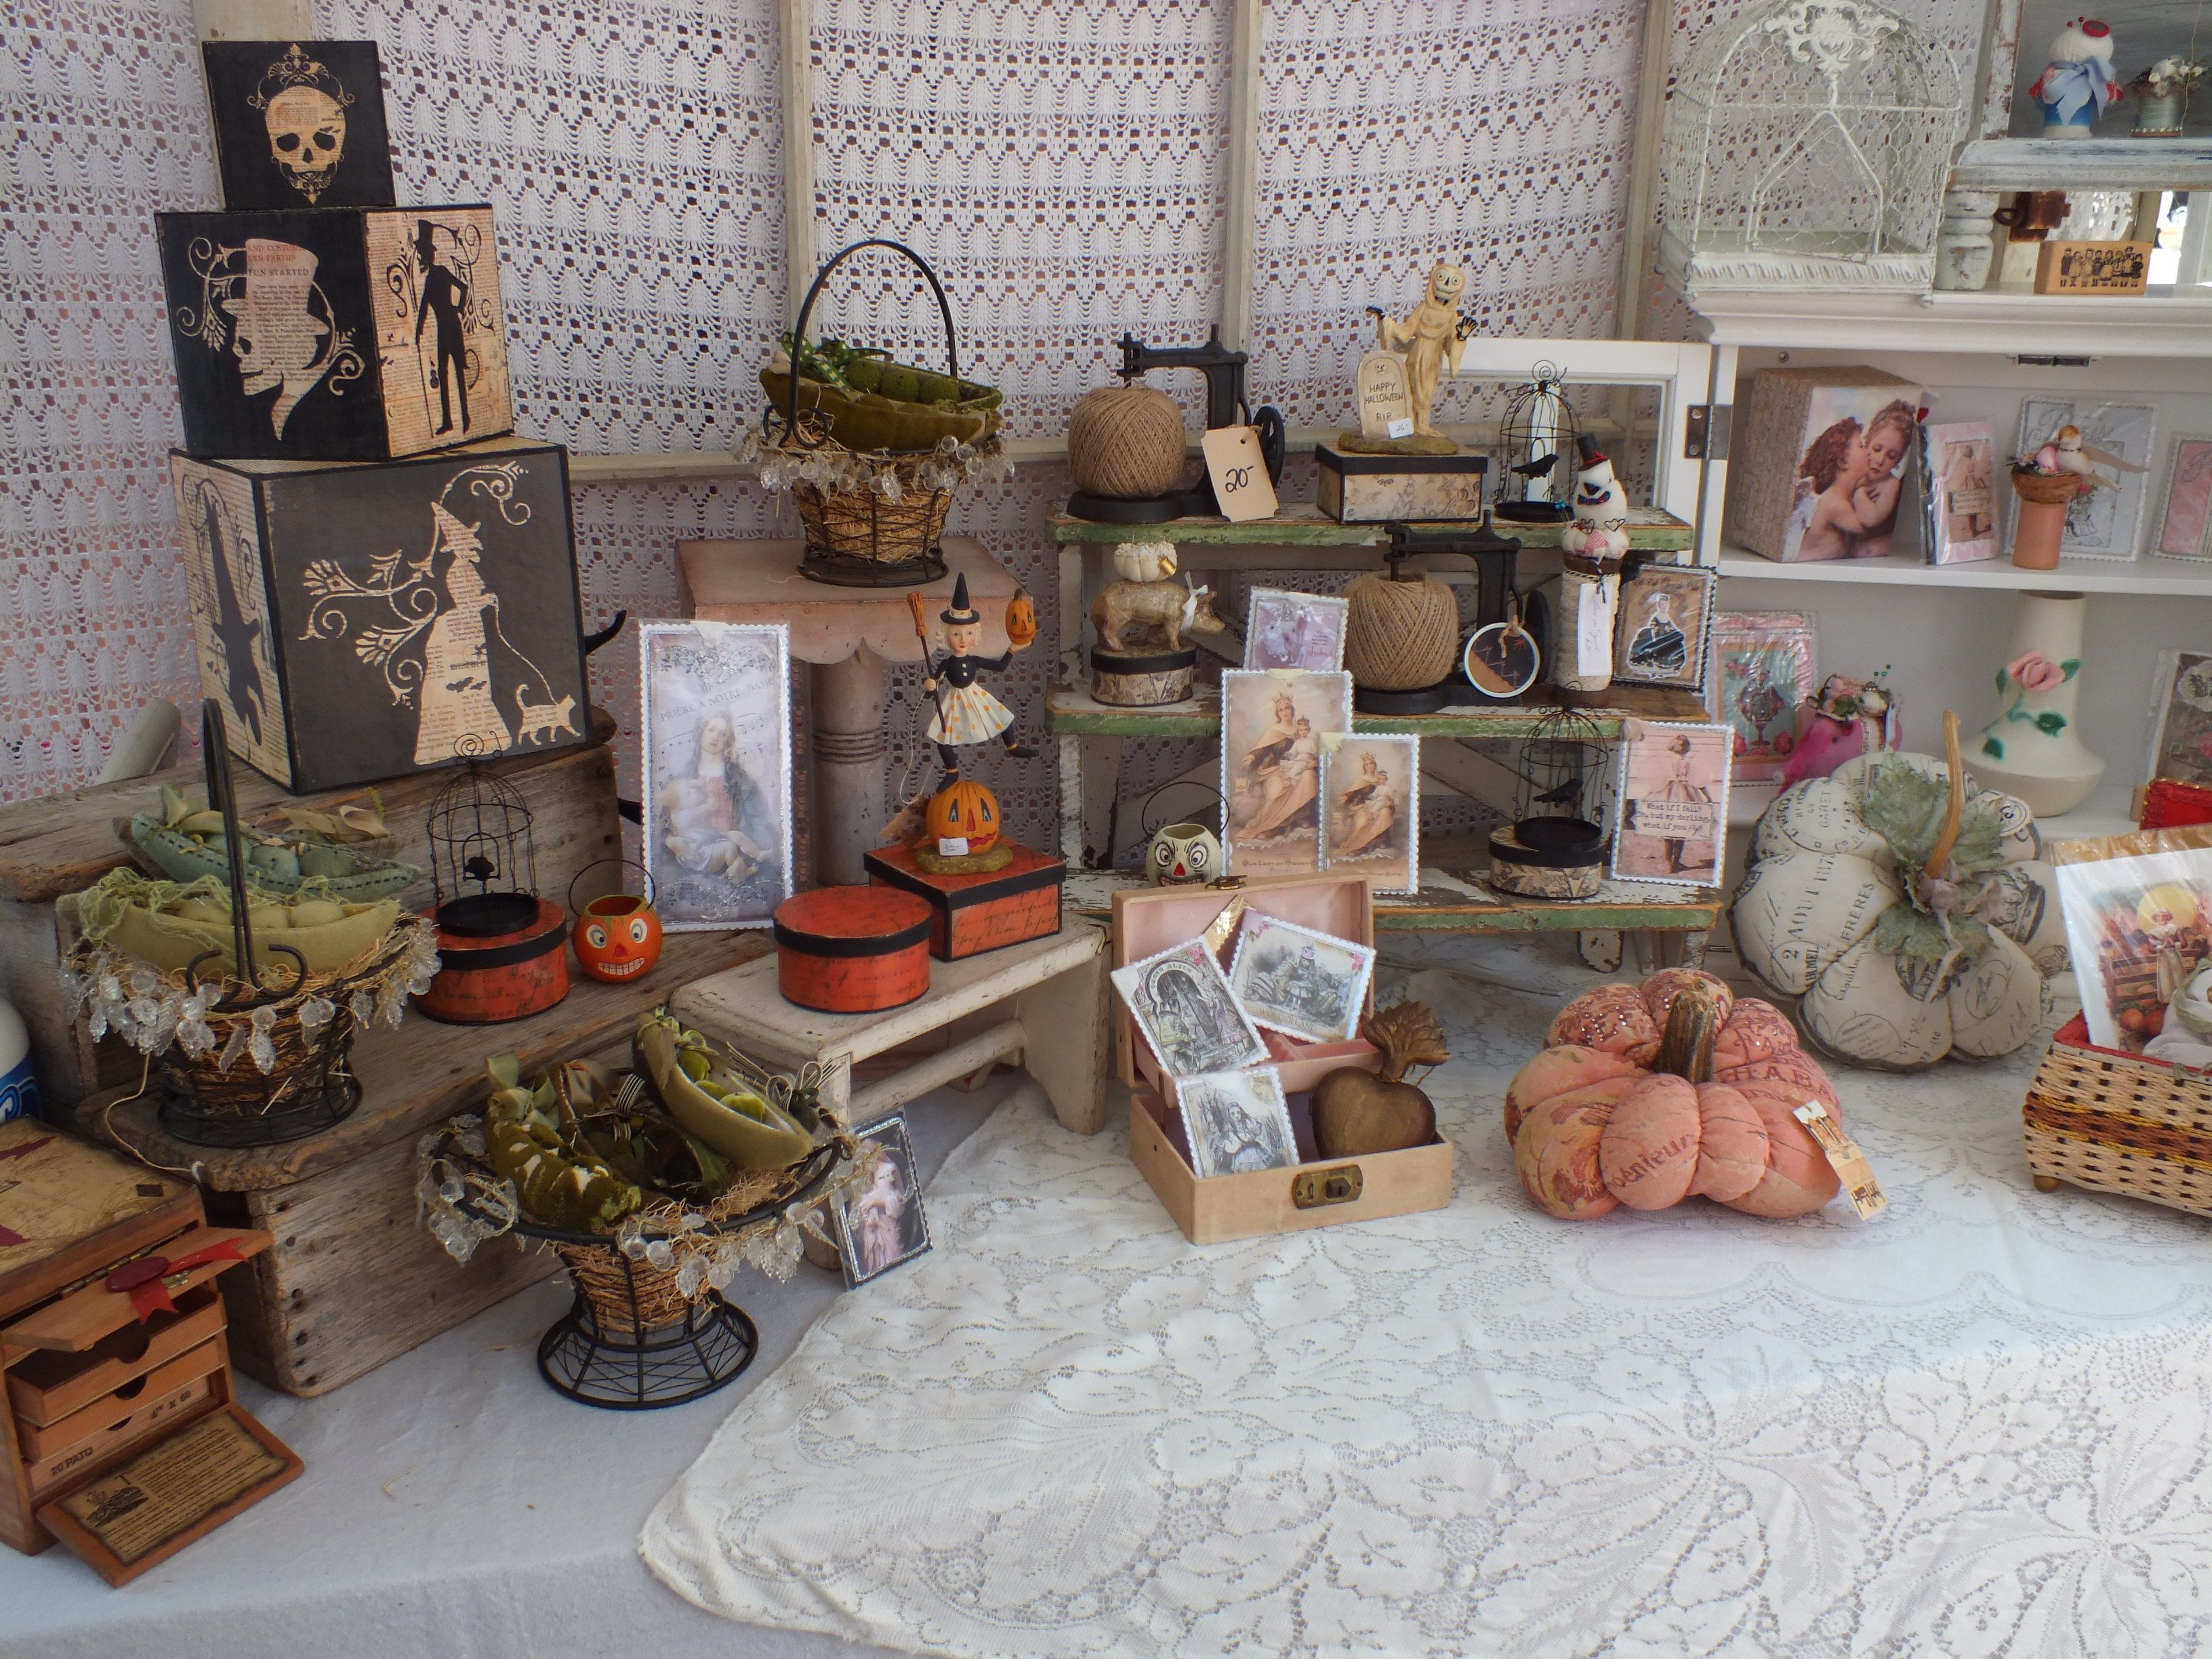 In Costa Mesa Over 65 Vendors Ing Shabby Chic Vintage Re Purposed Rustic Home Decor And Handmade Items Adams Ave Free Parking